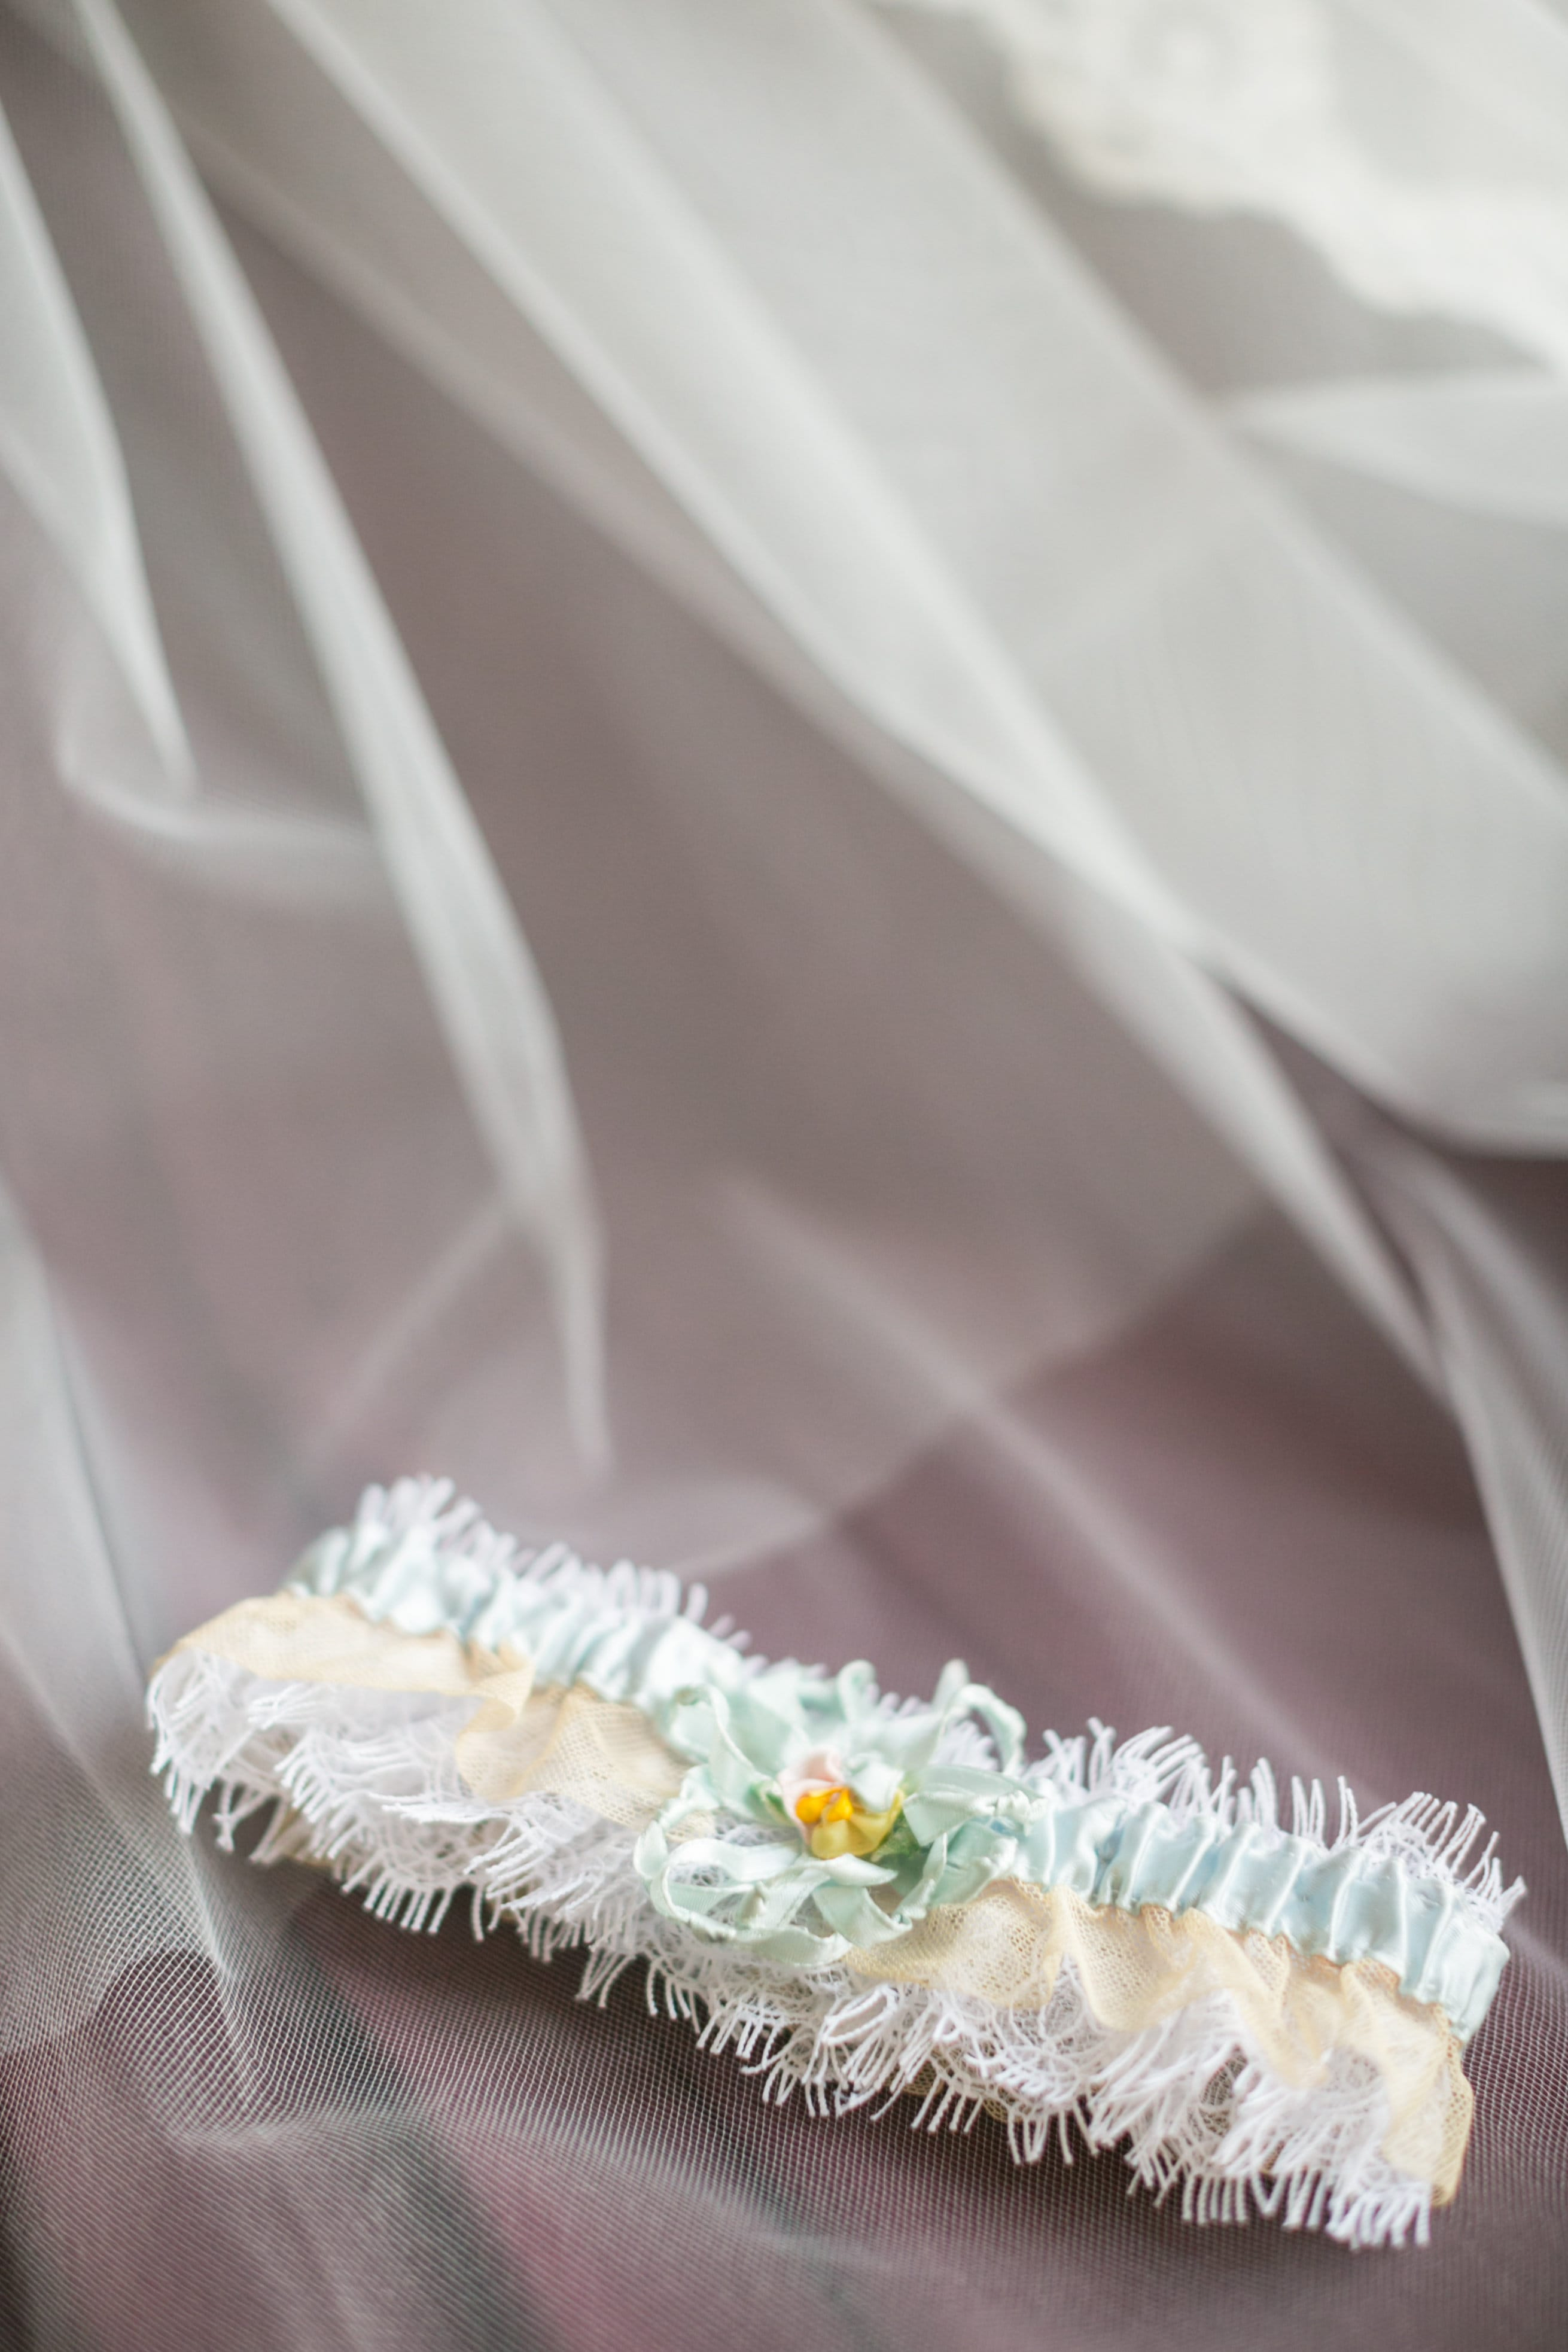 Online dating and college spirit-themed love story. Bride Lauren in Maggie Sottero gown Saffron.